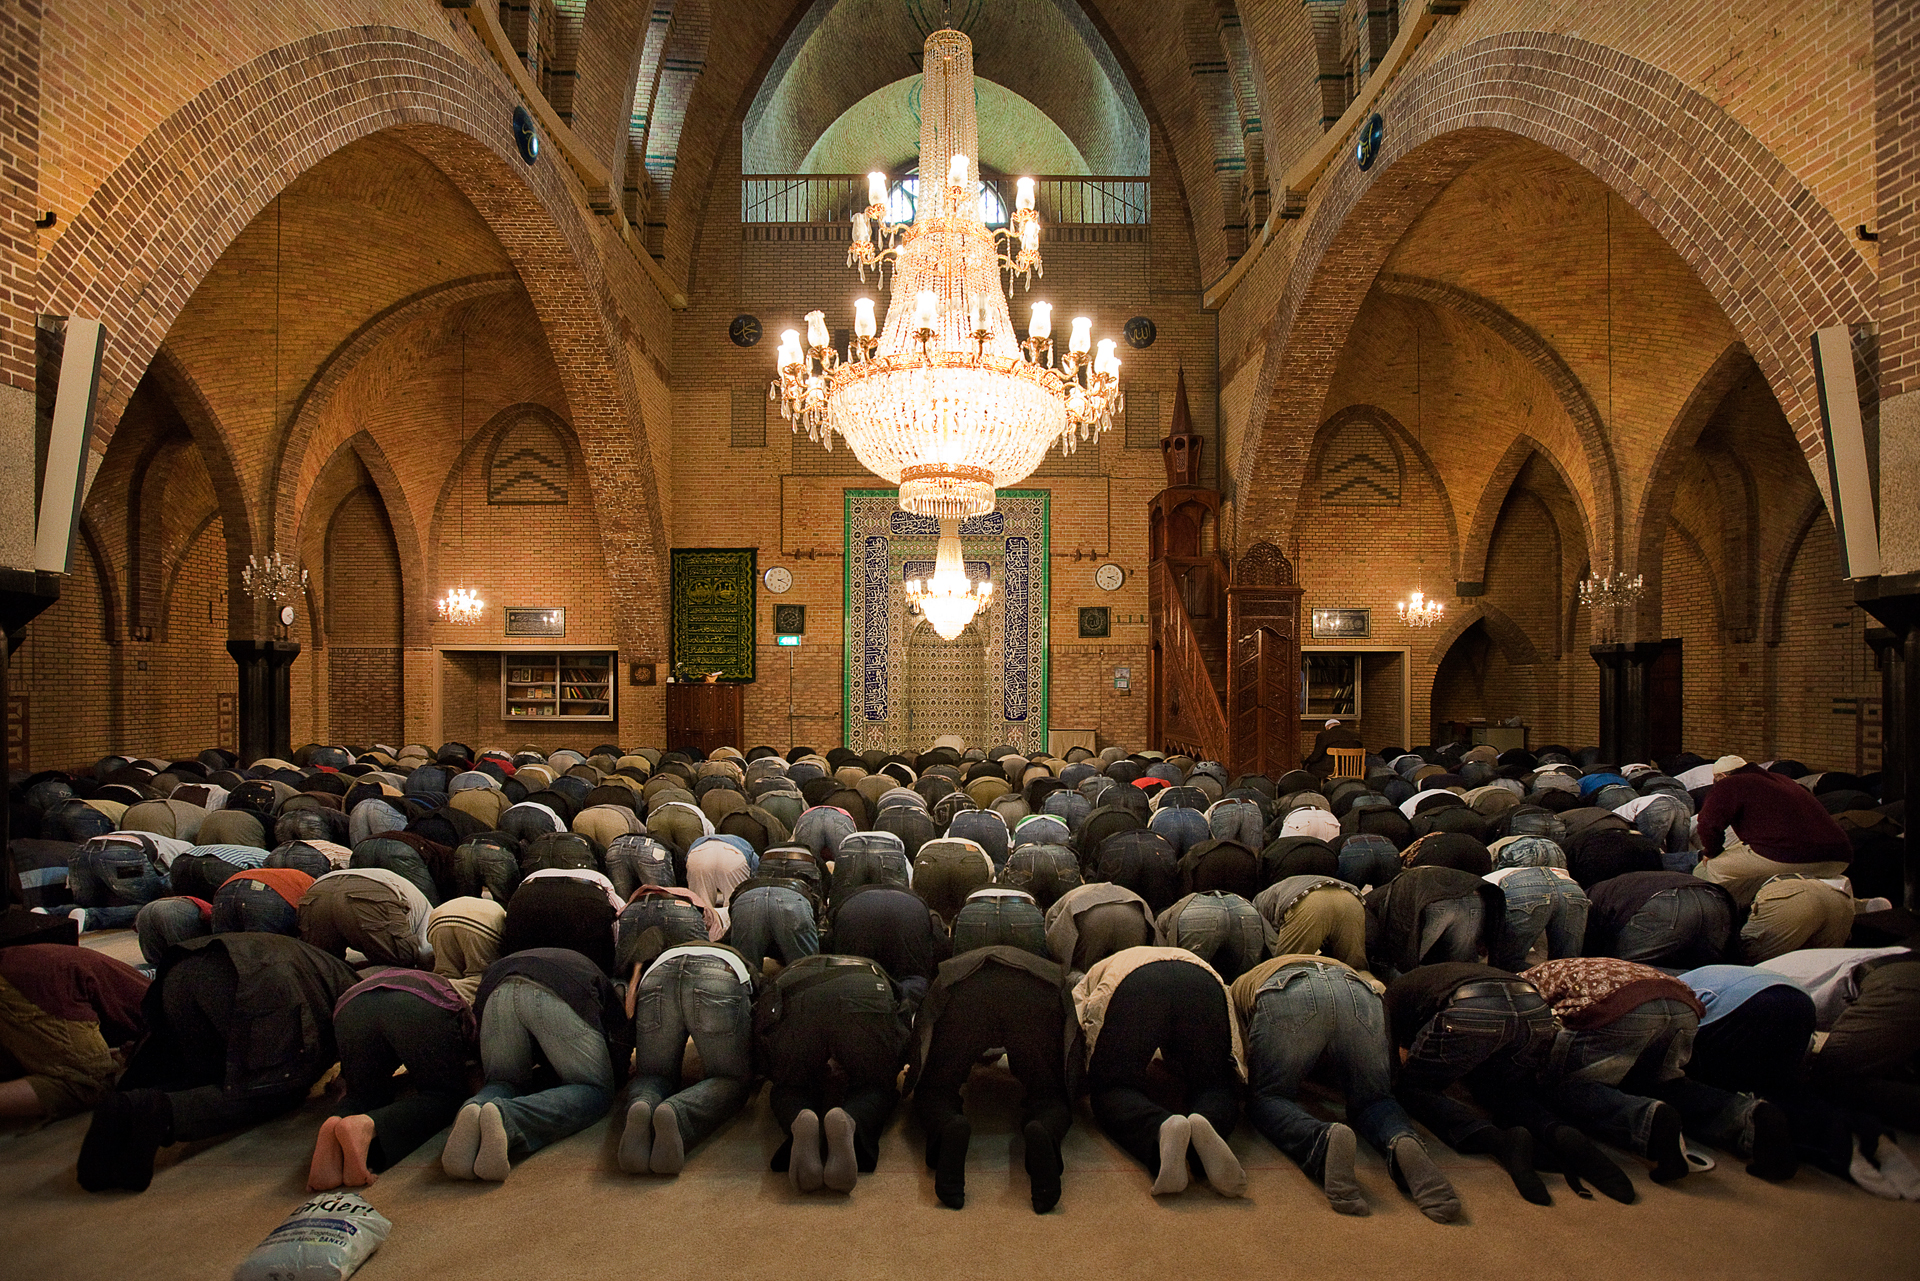 Men pray at the Turkish Fatih mosque on Rozengracht in Amsterdam.